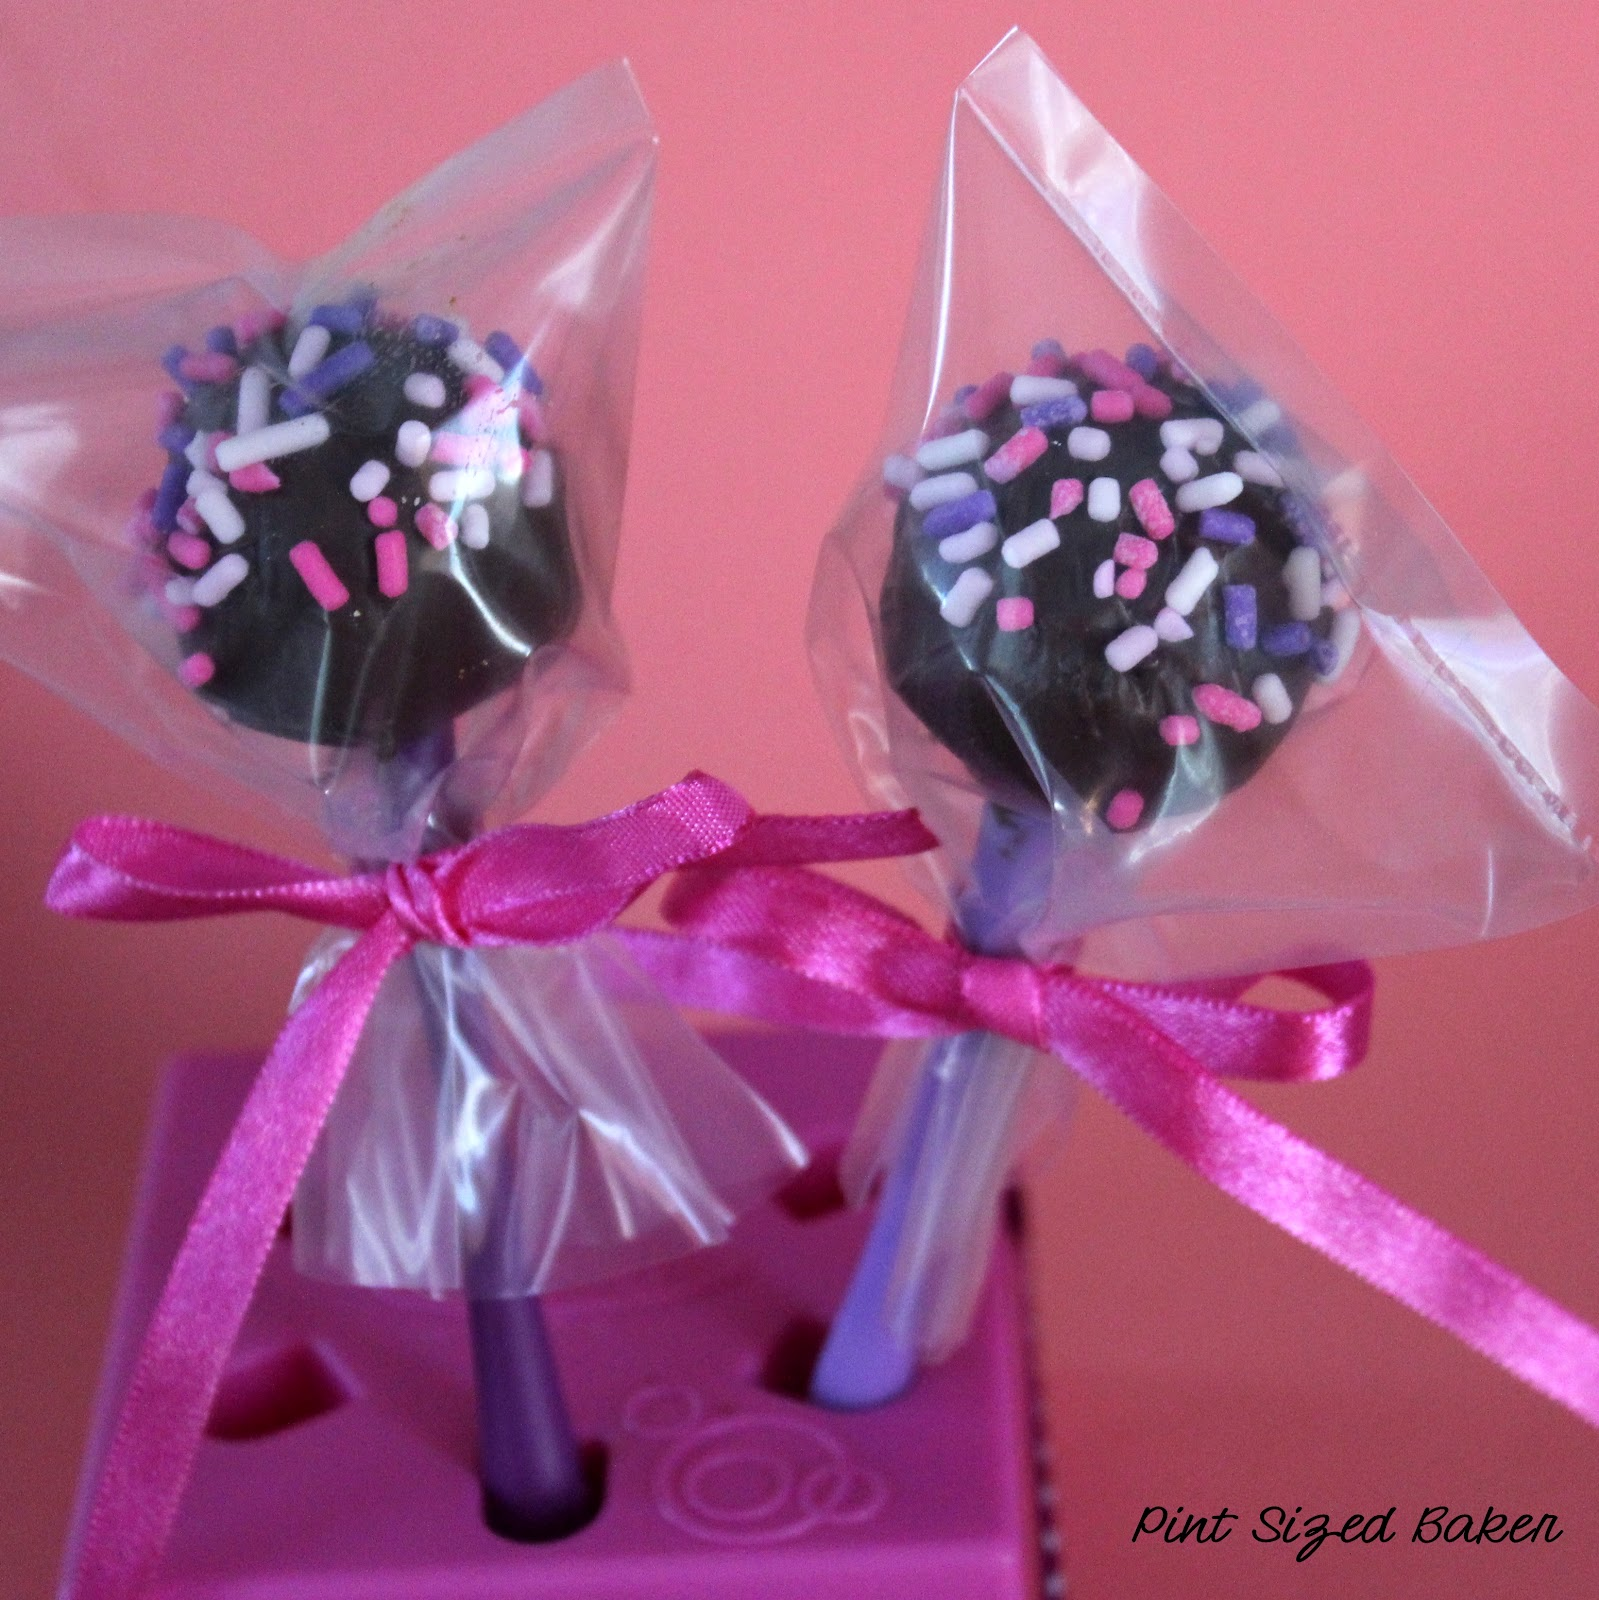 Review of Easy Bake Oven Cake Pop Kit - Pint Sized Baker